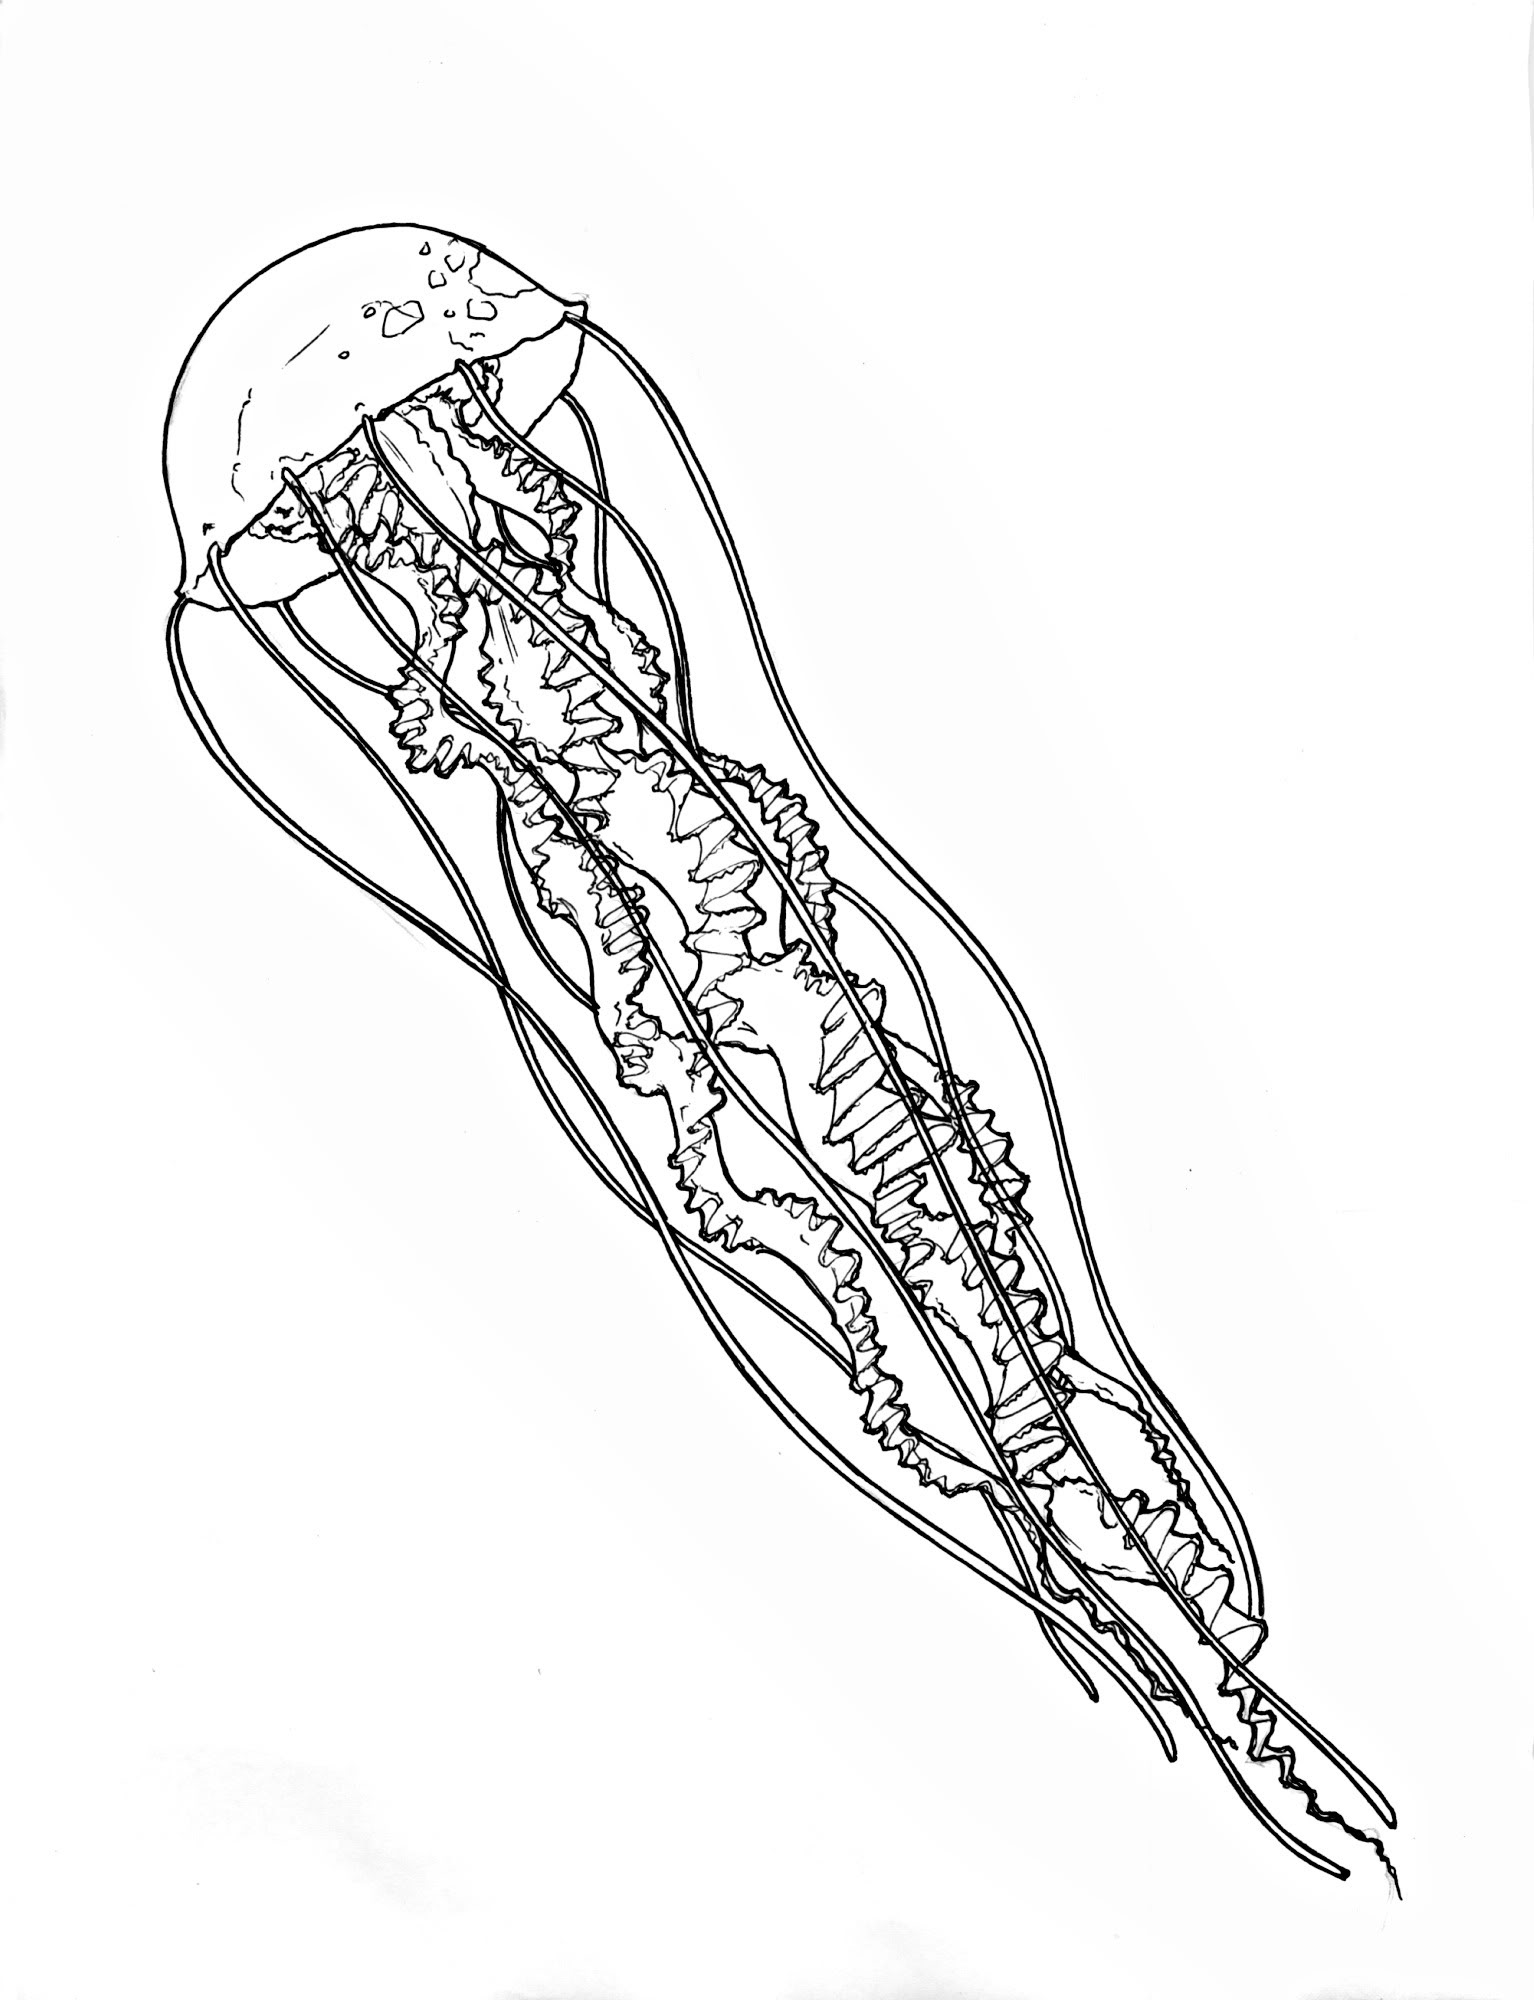 Jellyfish Line Art : Jelly fish outline clipart suggest